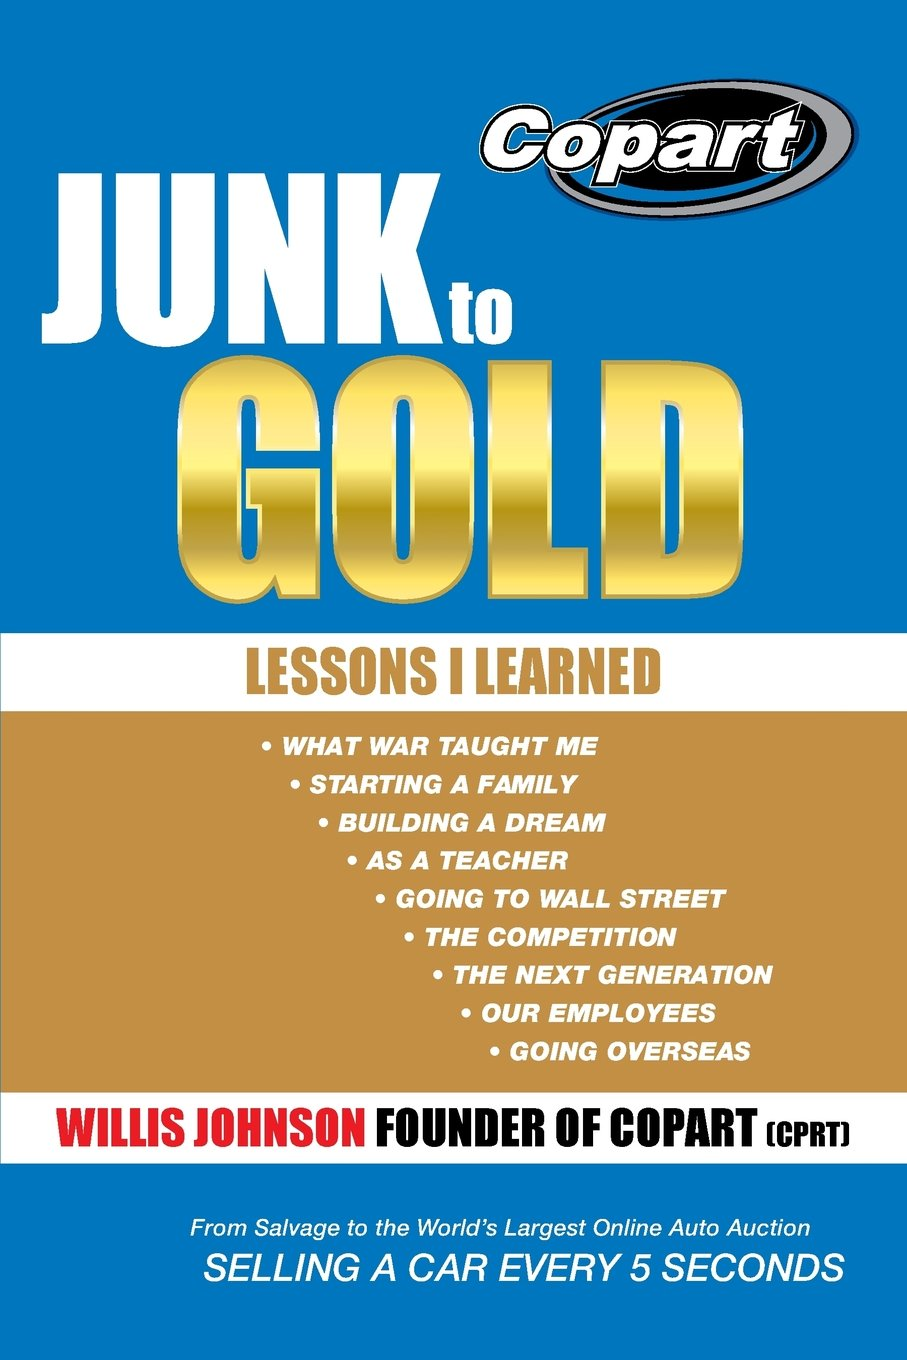 junk to gold from salvage to the worlds largest online auto auction willis johnson 9781490816579 amazoncom books - Garden Spot Auto Auction